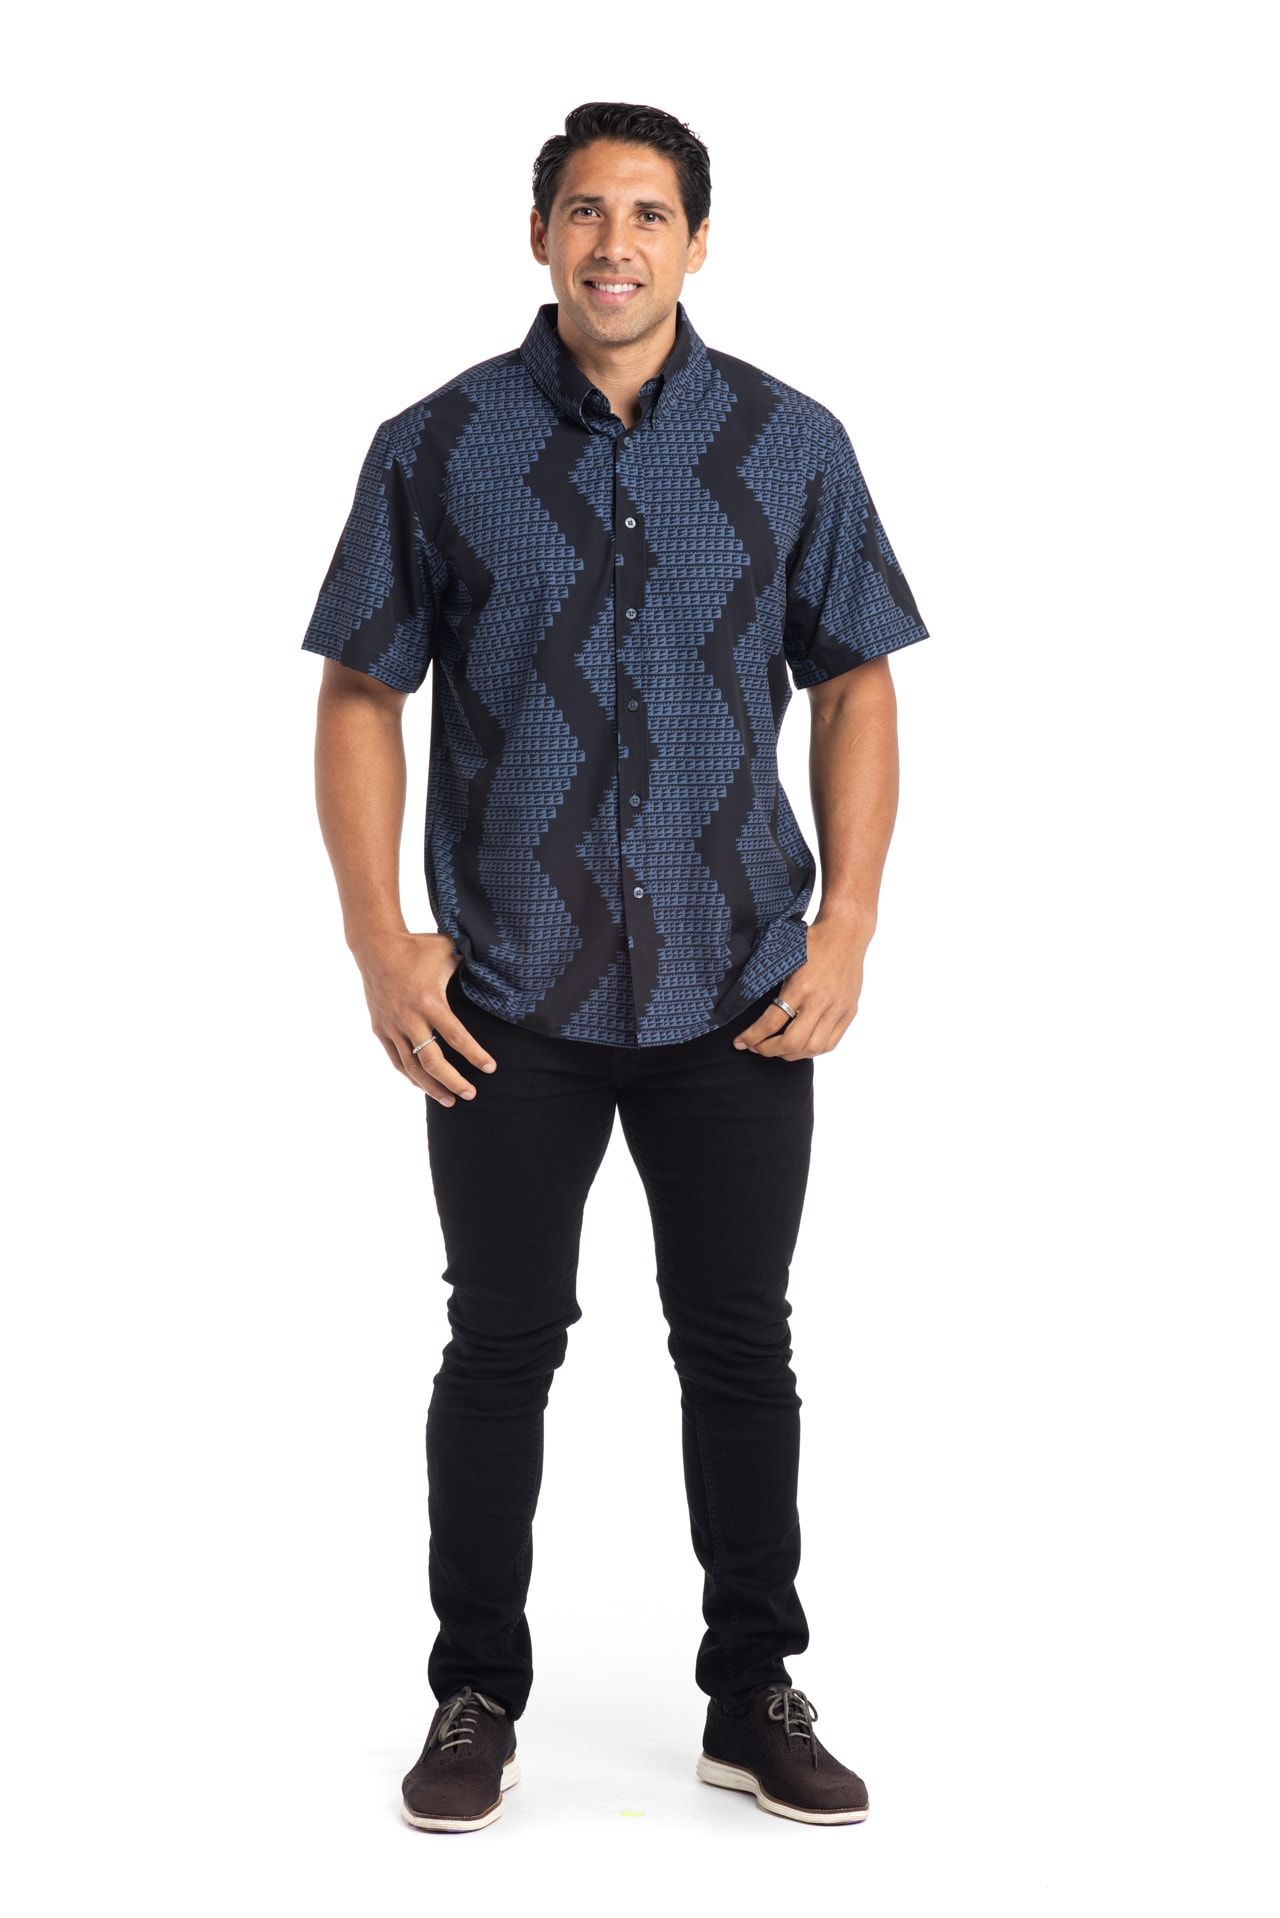 Male Model wearing Mahalo Shirt S-S - Front View